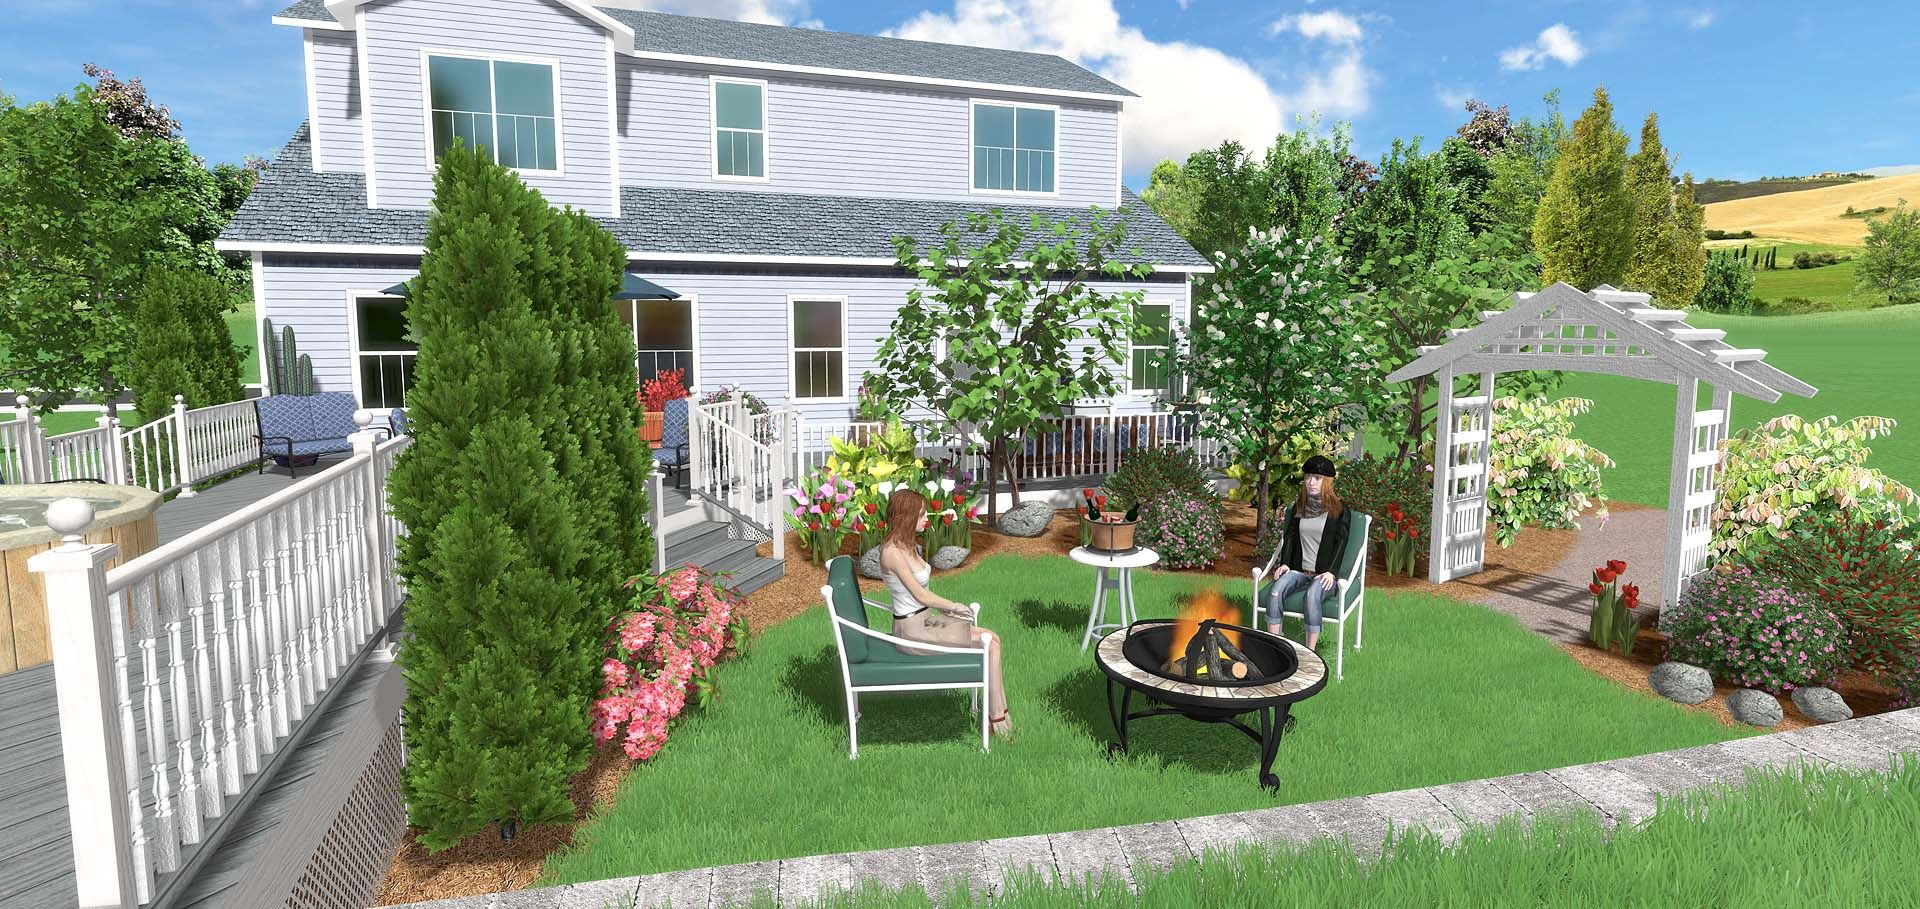 Realtime Landscaping Pro Was Designed From The Ground Up To Be Easy To Use Description Garden Design Software Free Landscape Design Landscape Design Software